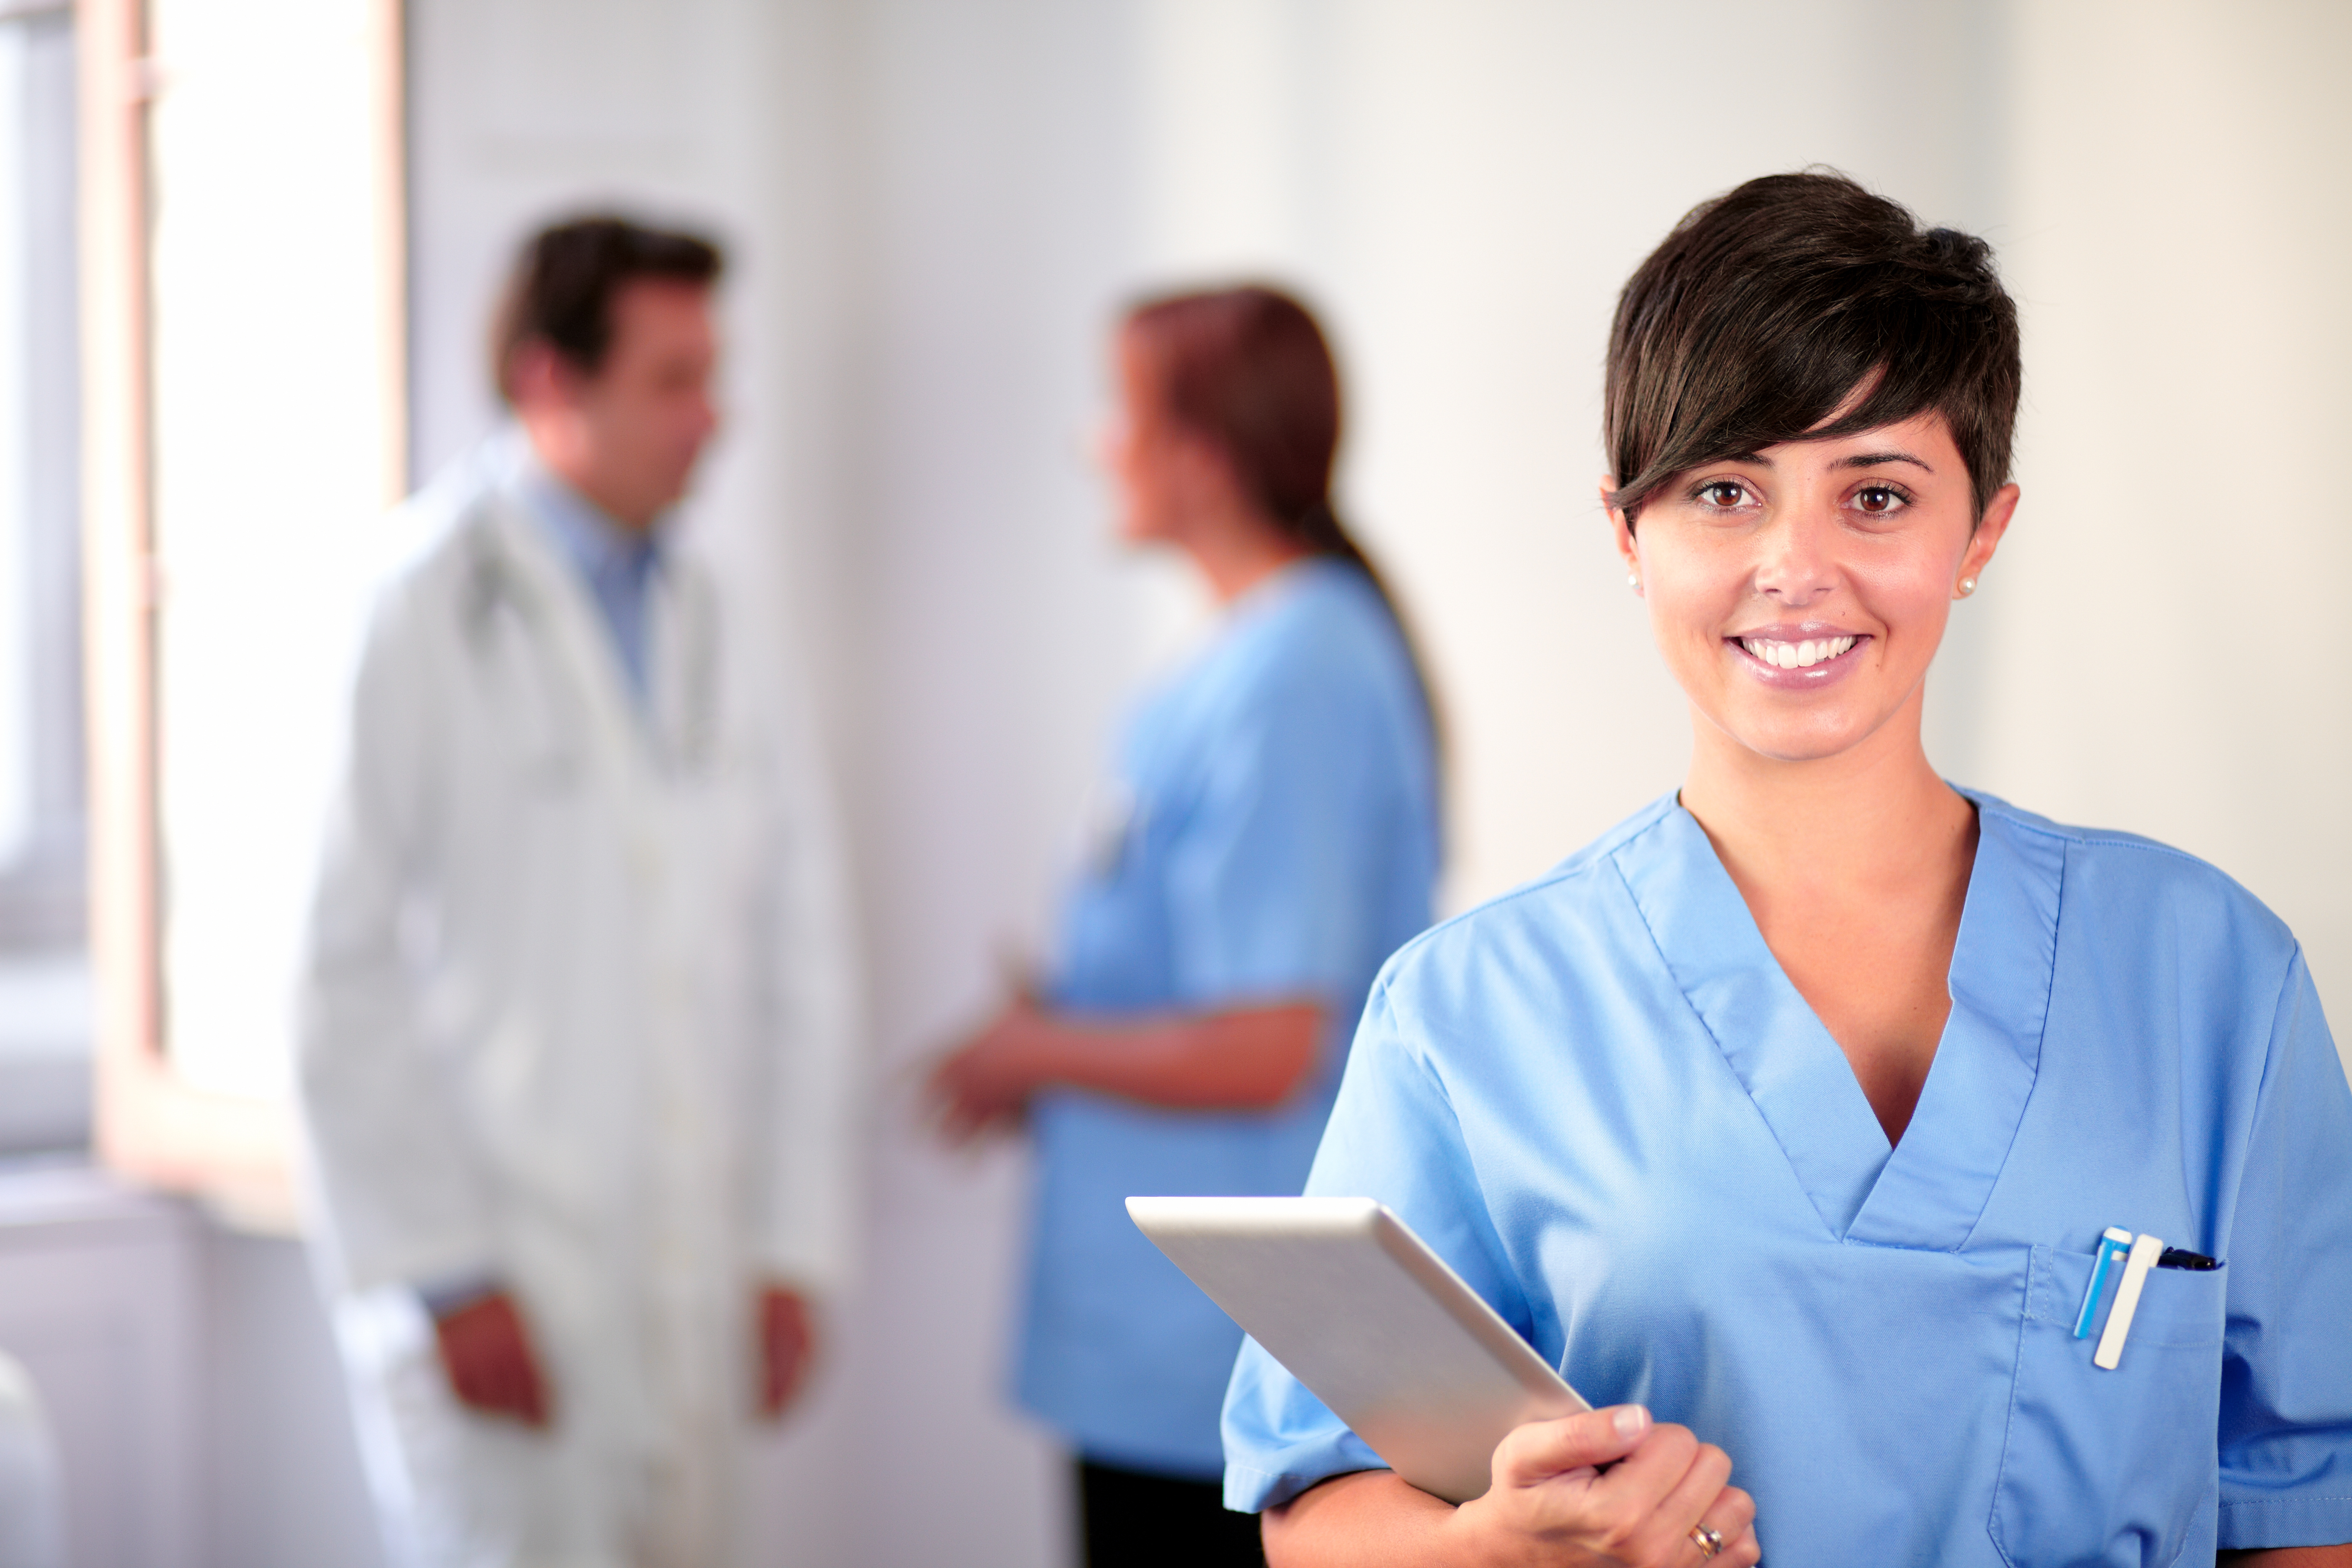 Portrait of a lovely latin nurse on blue uniform standing and smiling on medical team background